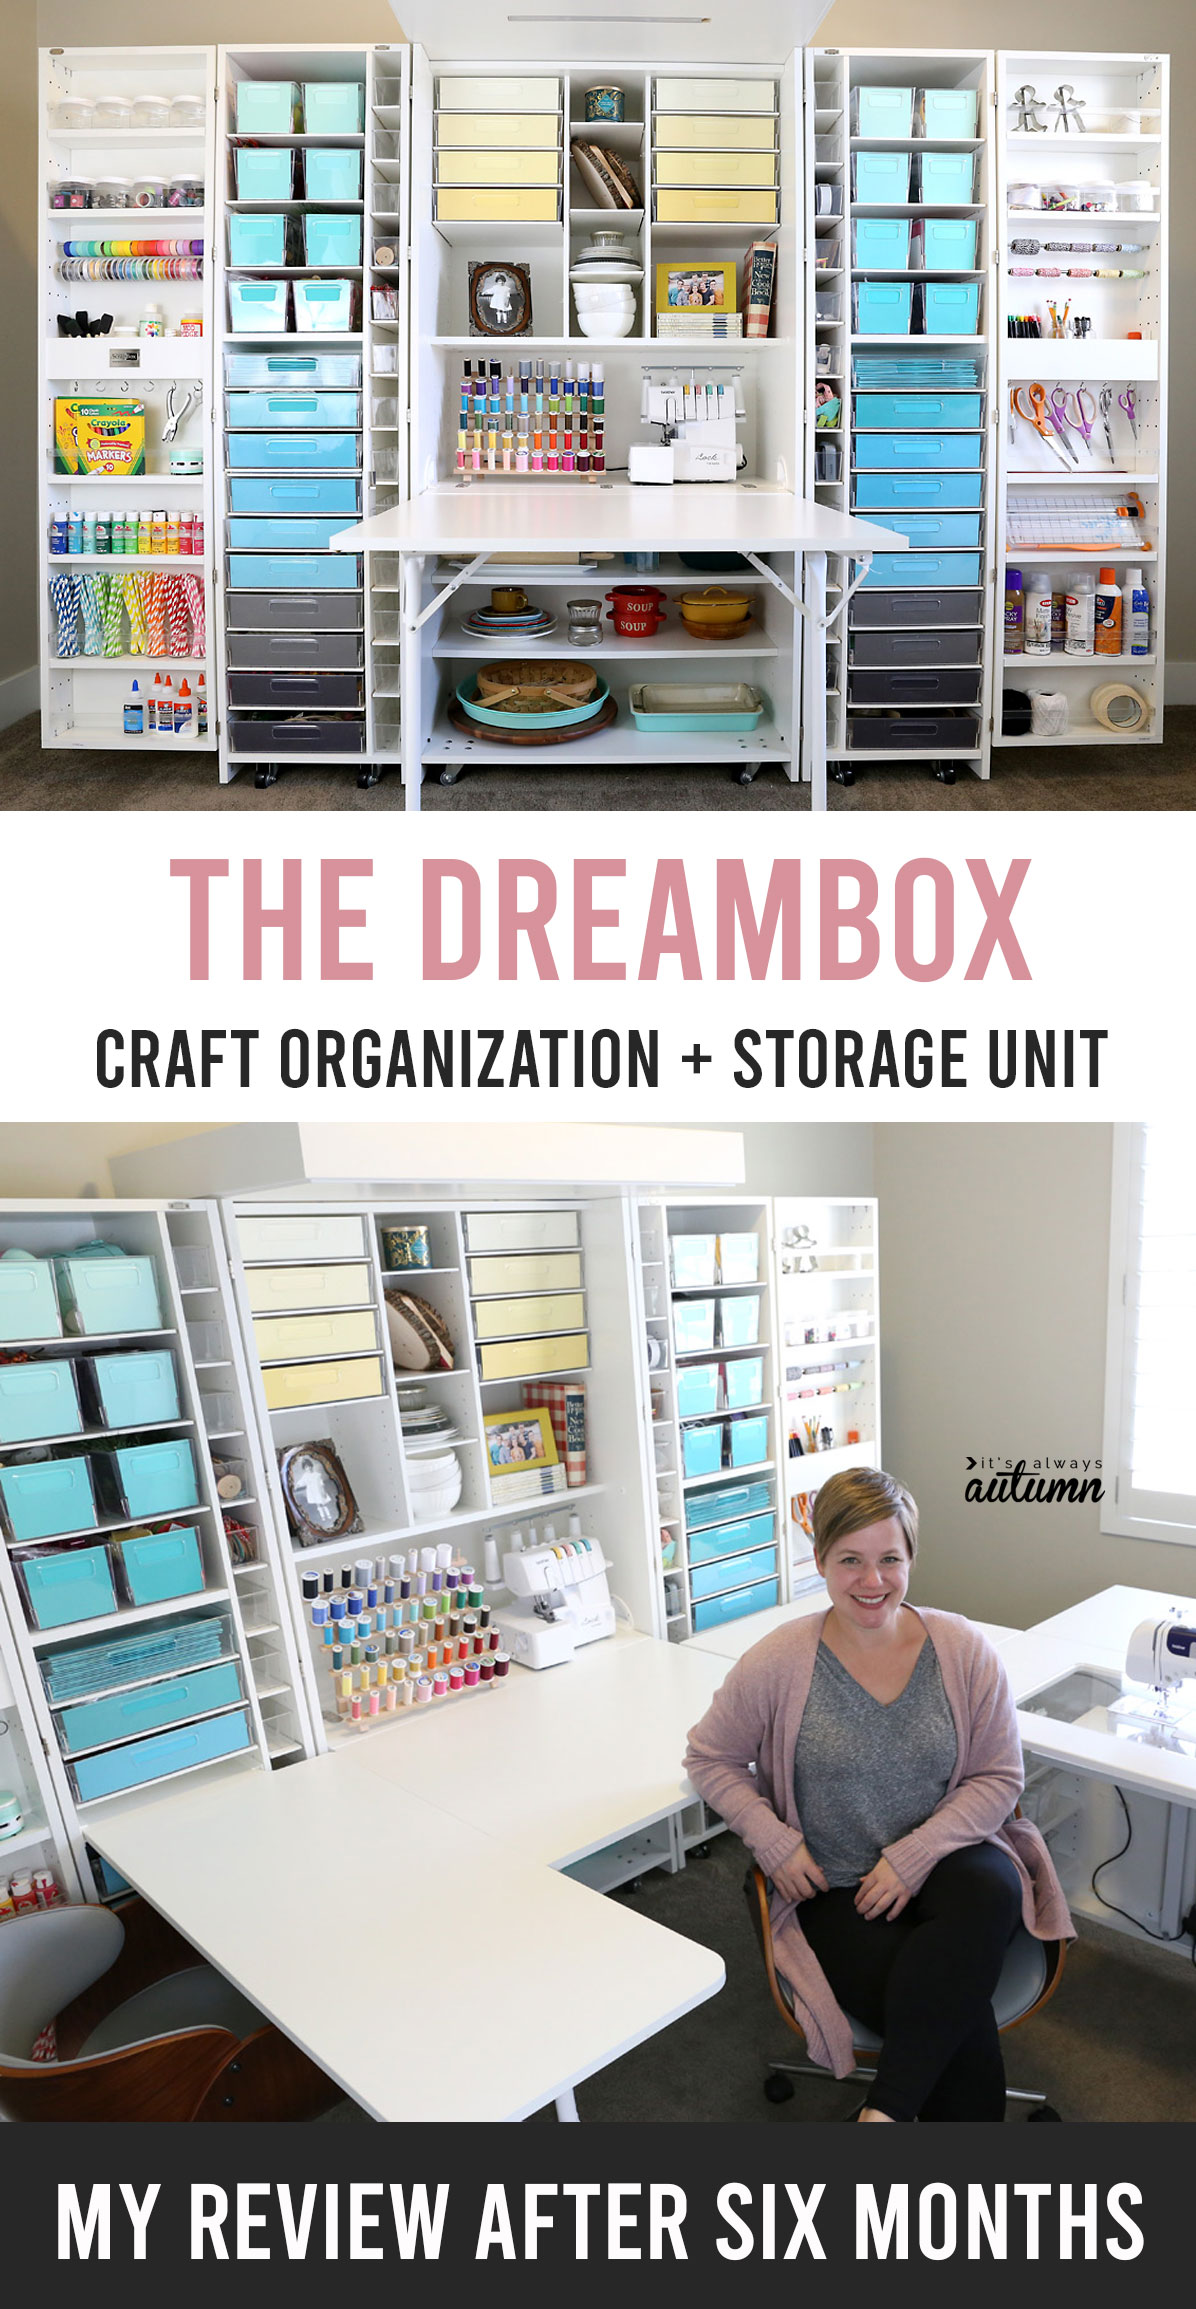 The DreamBox craft organization and storage unit